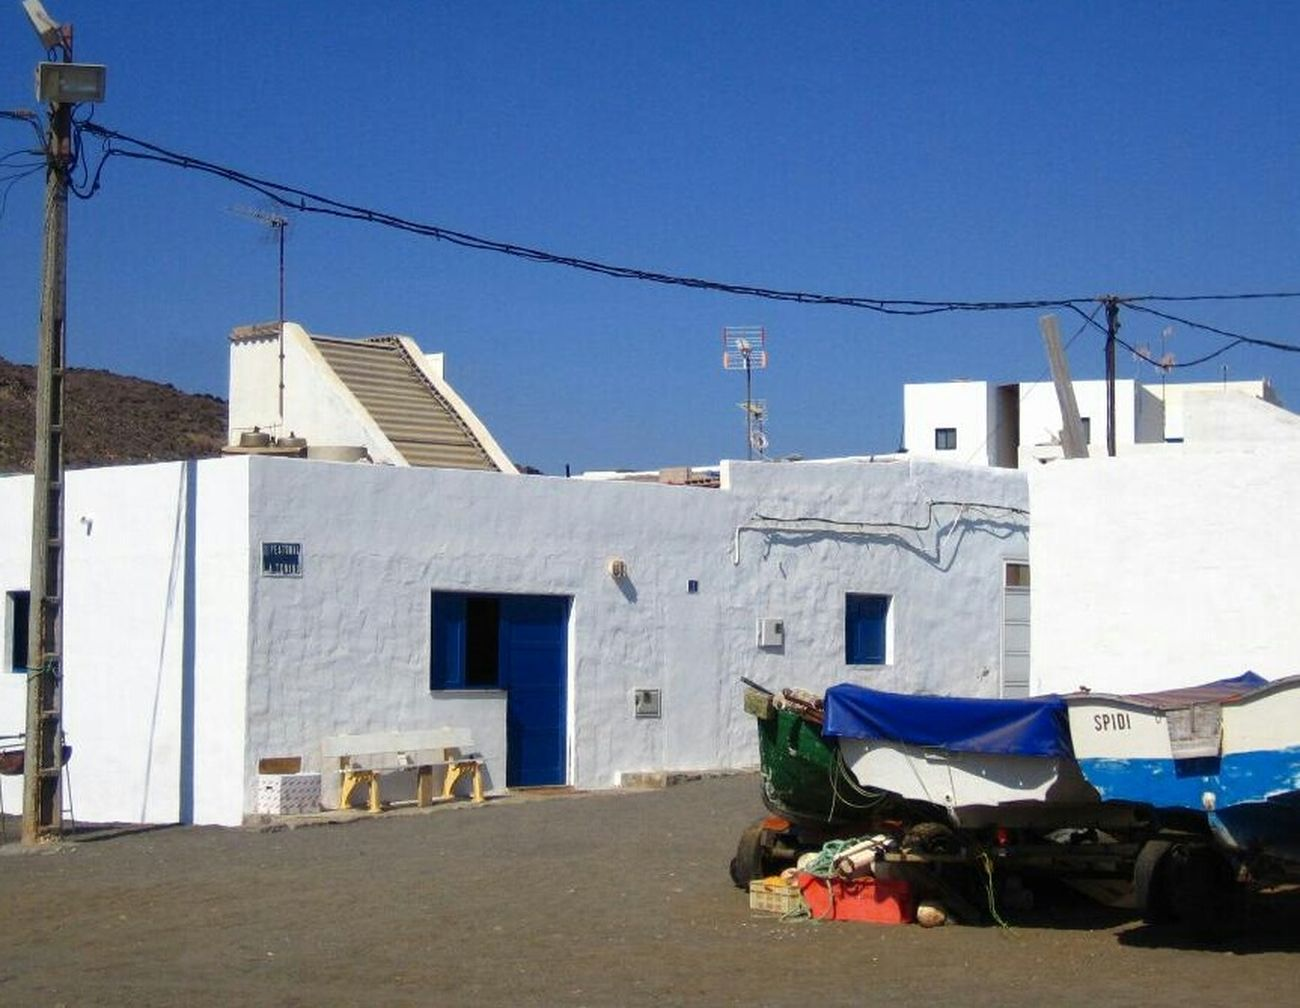 White house, blue door (Fuerteventura, Spain) Fuerteventura Beach Town White